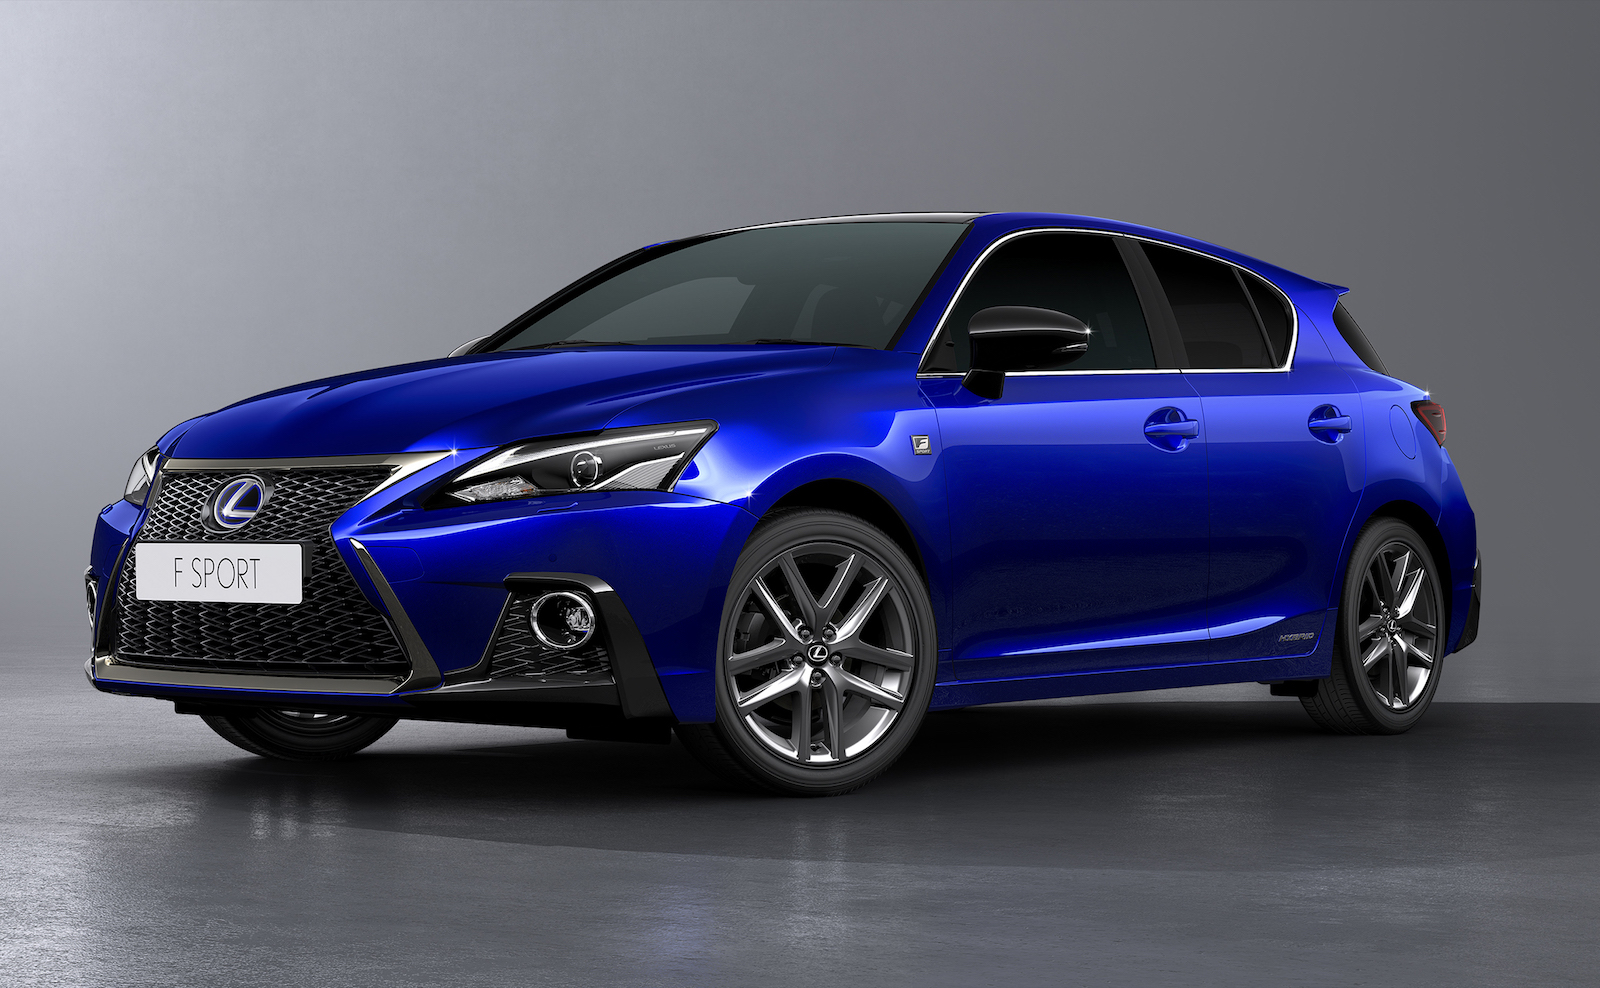 2018 lexus ct 200h facelift revealed with sharpened design performancedrive. Black Bedroom Furniture Sets. Home Design Ideas